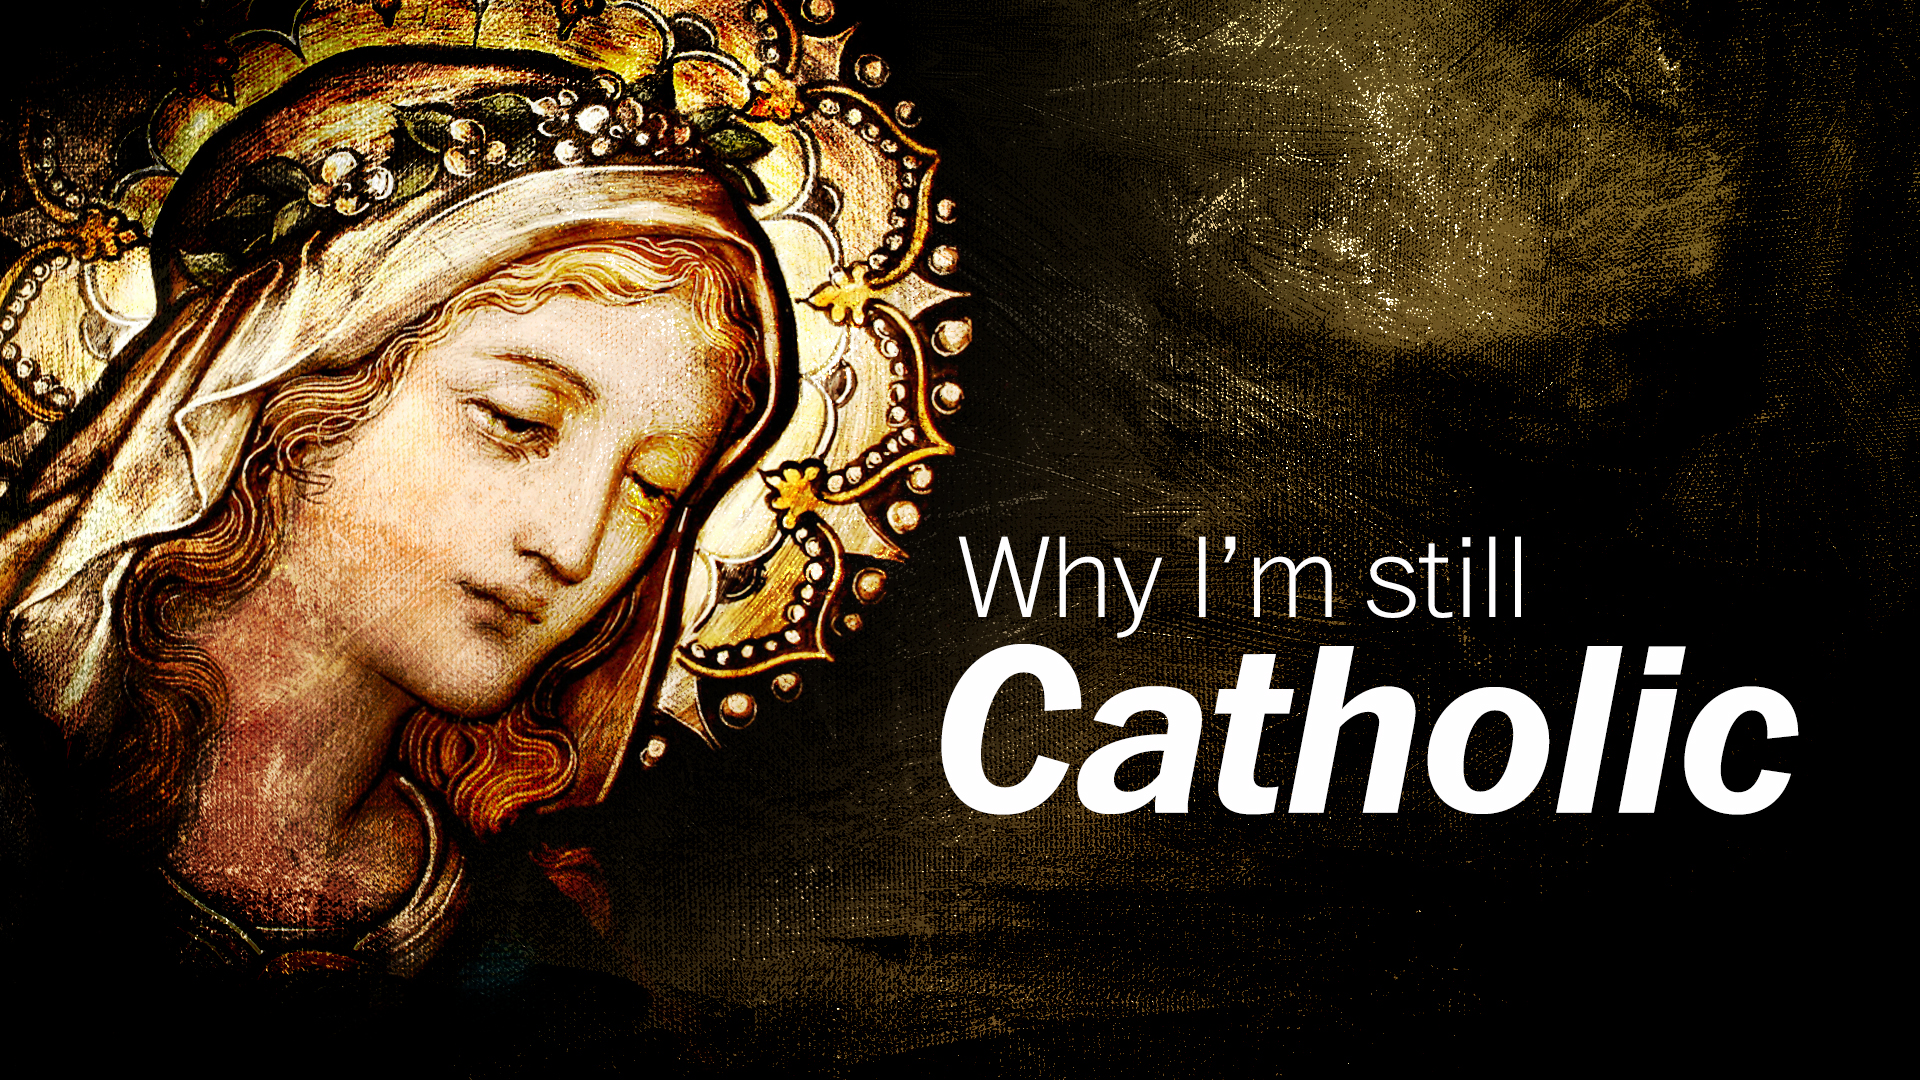 The Catholic Church is bursting with secrets. Investigating one will unravel them all.